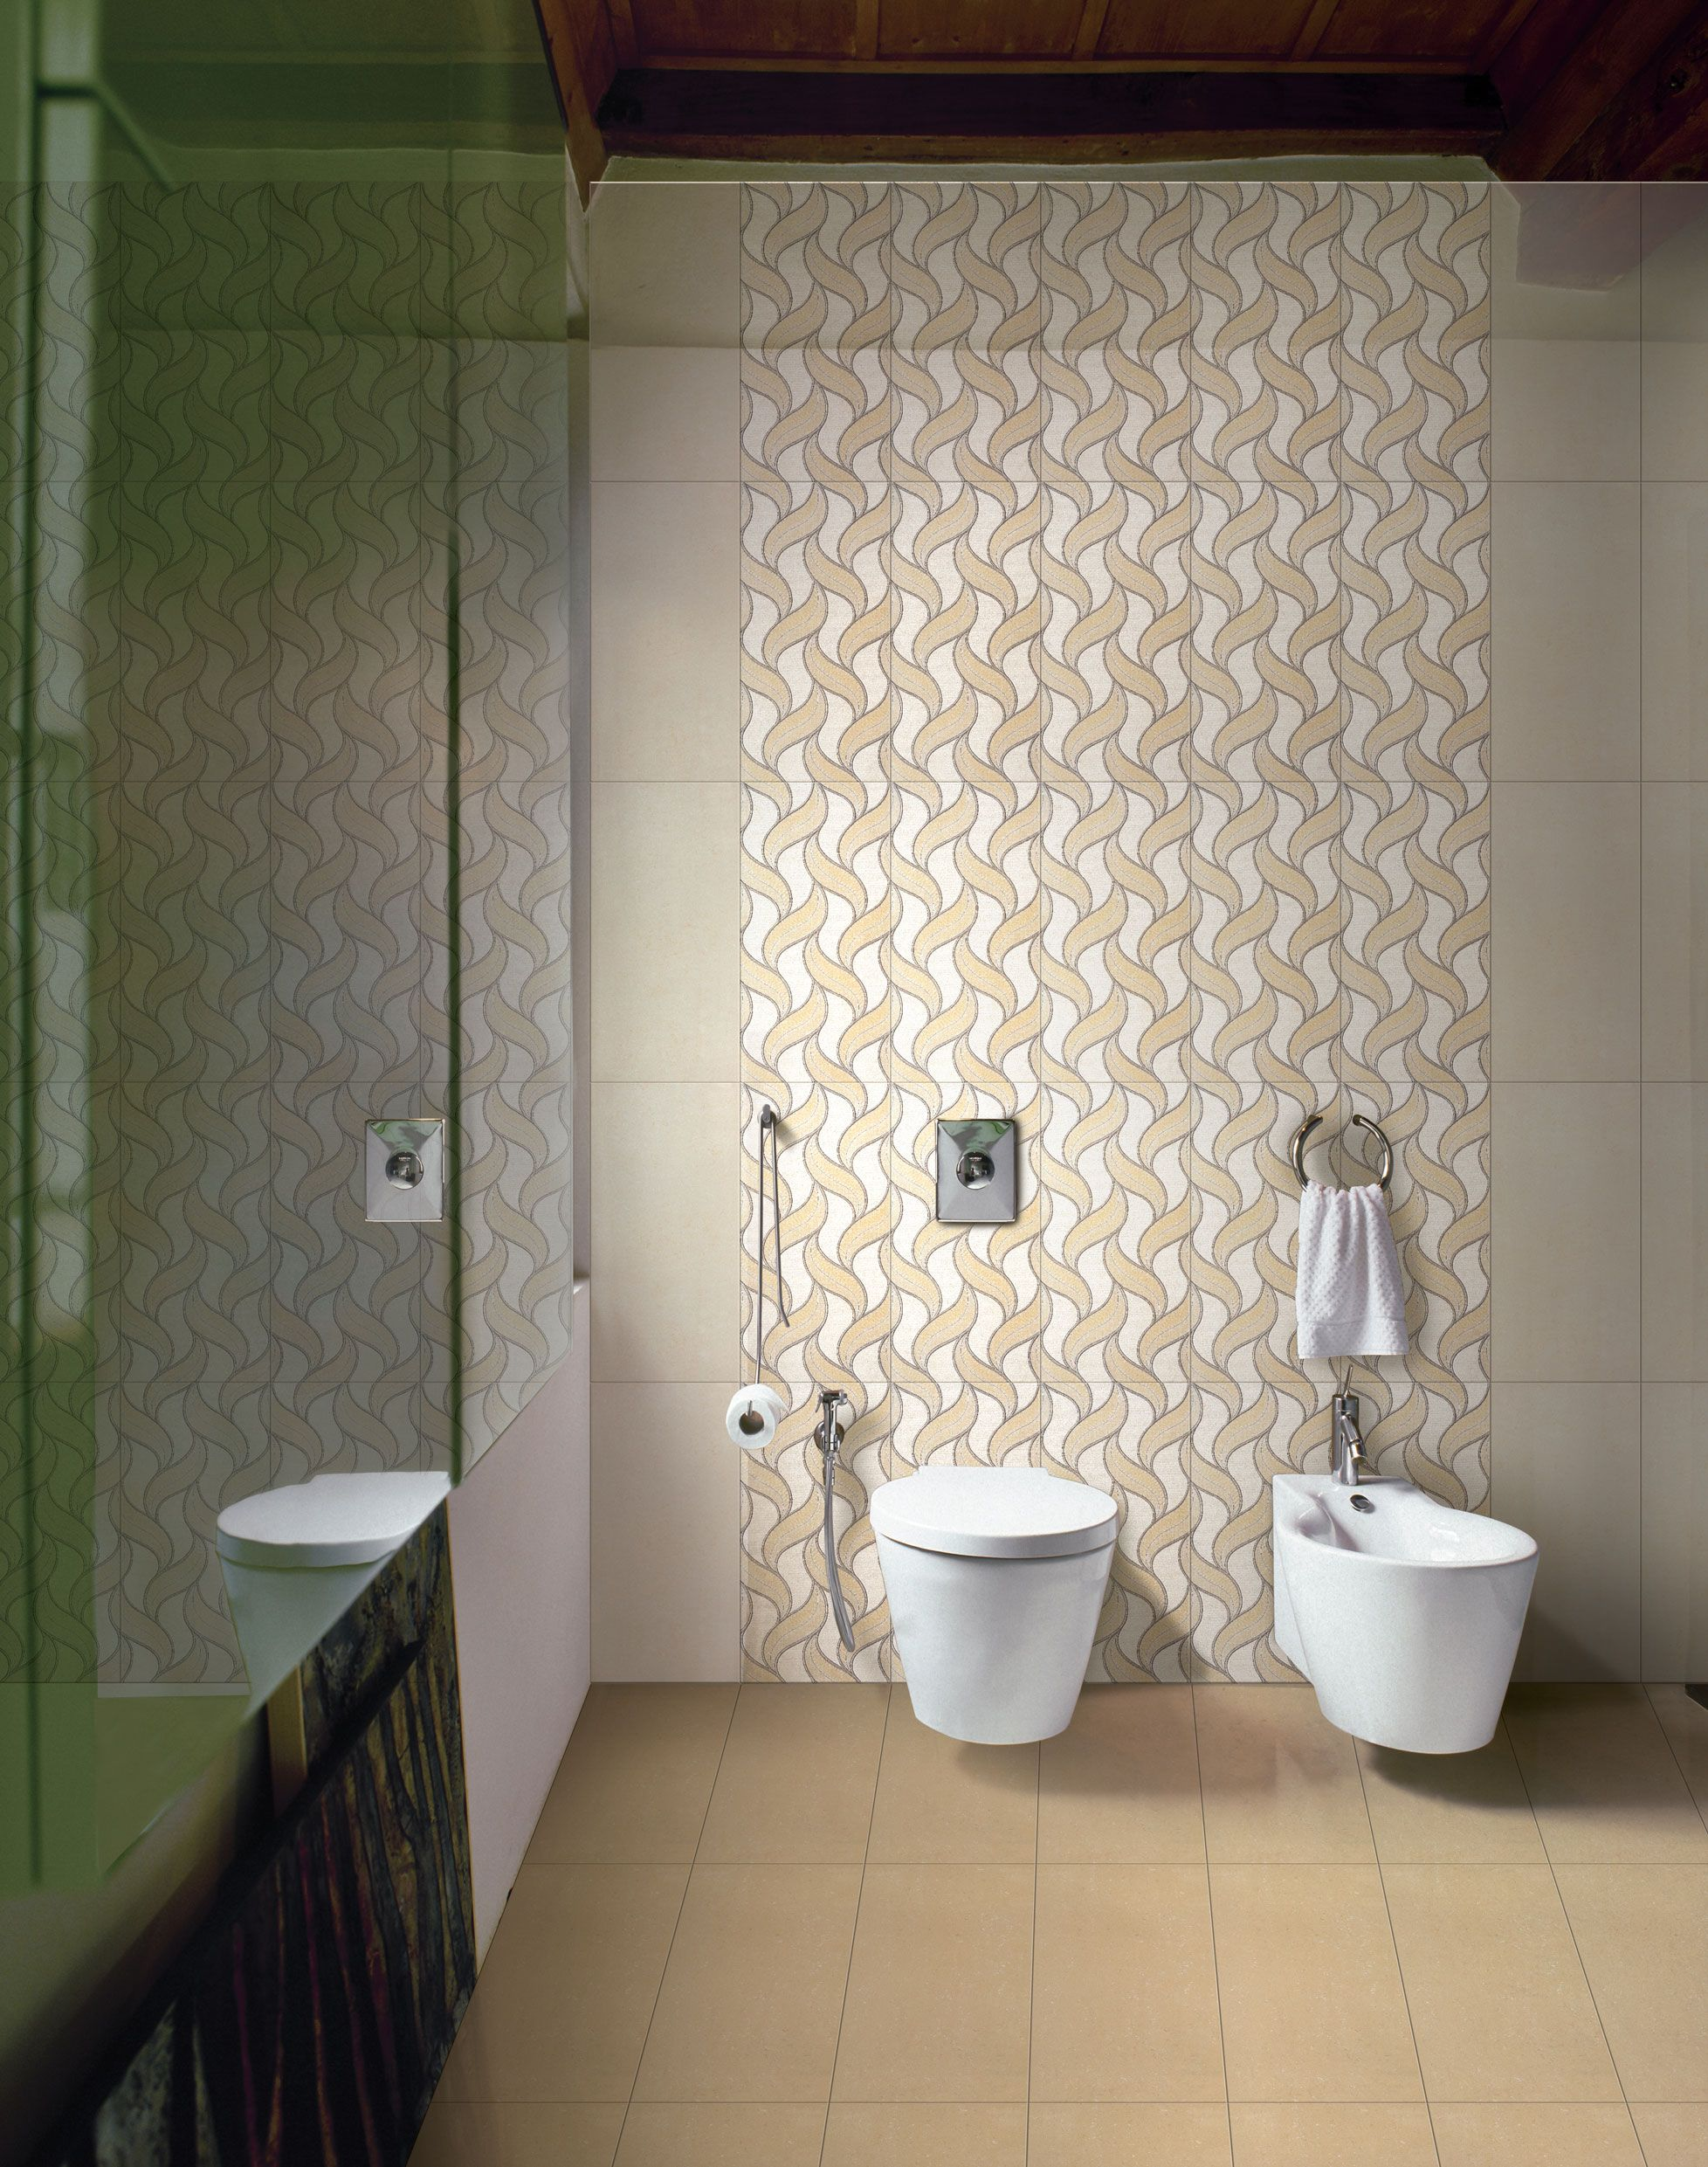 Kitchen Tiles Design Photos In India Buy Designer Floor Wall Tiles For Bathroom Bedroom Kitchen